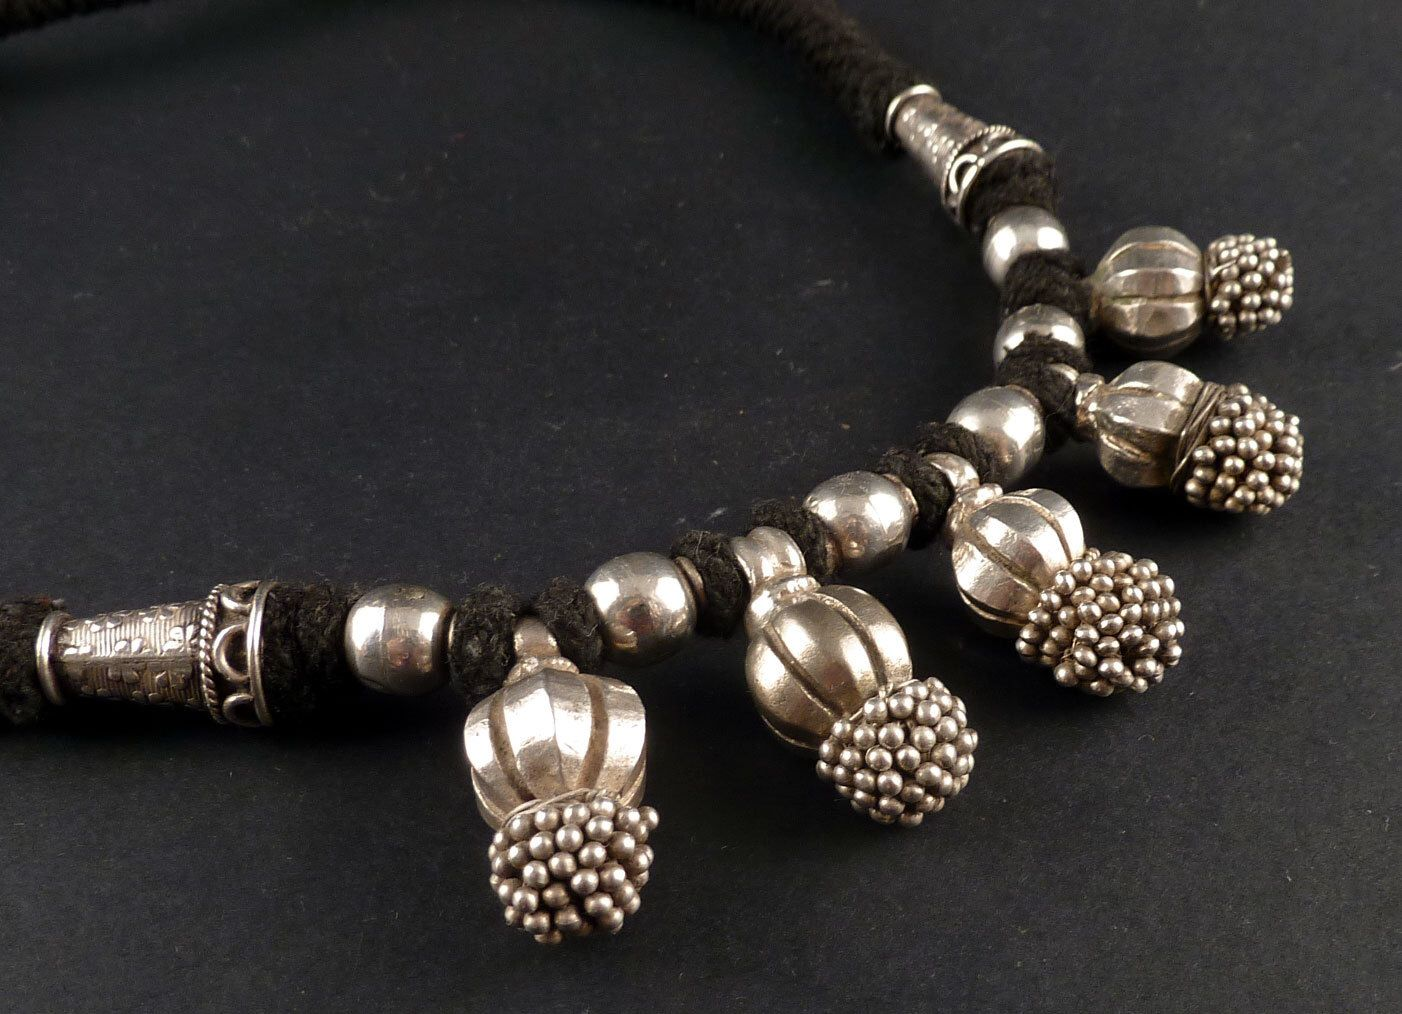 Heavy rajasthan silver old pendants necklace old indian jewelry heavy rajasthan silver old pendants necklace old indian jewelry necklace from india ethnic mozeypictures Gallery